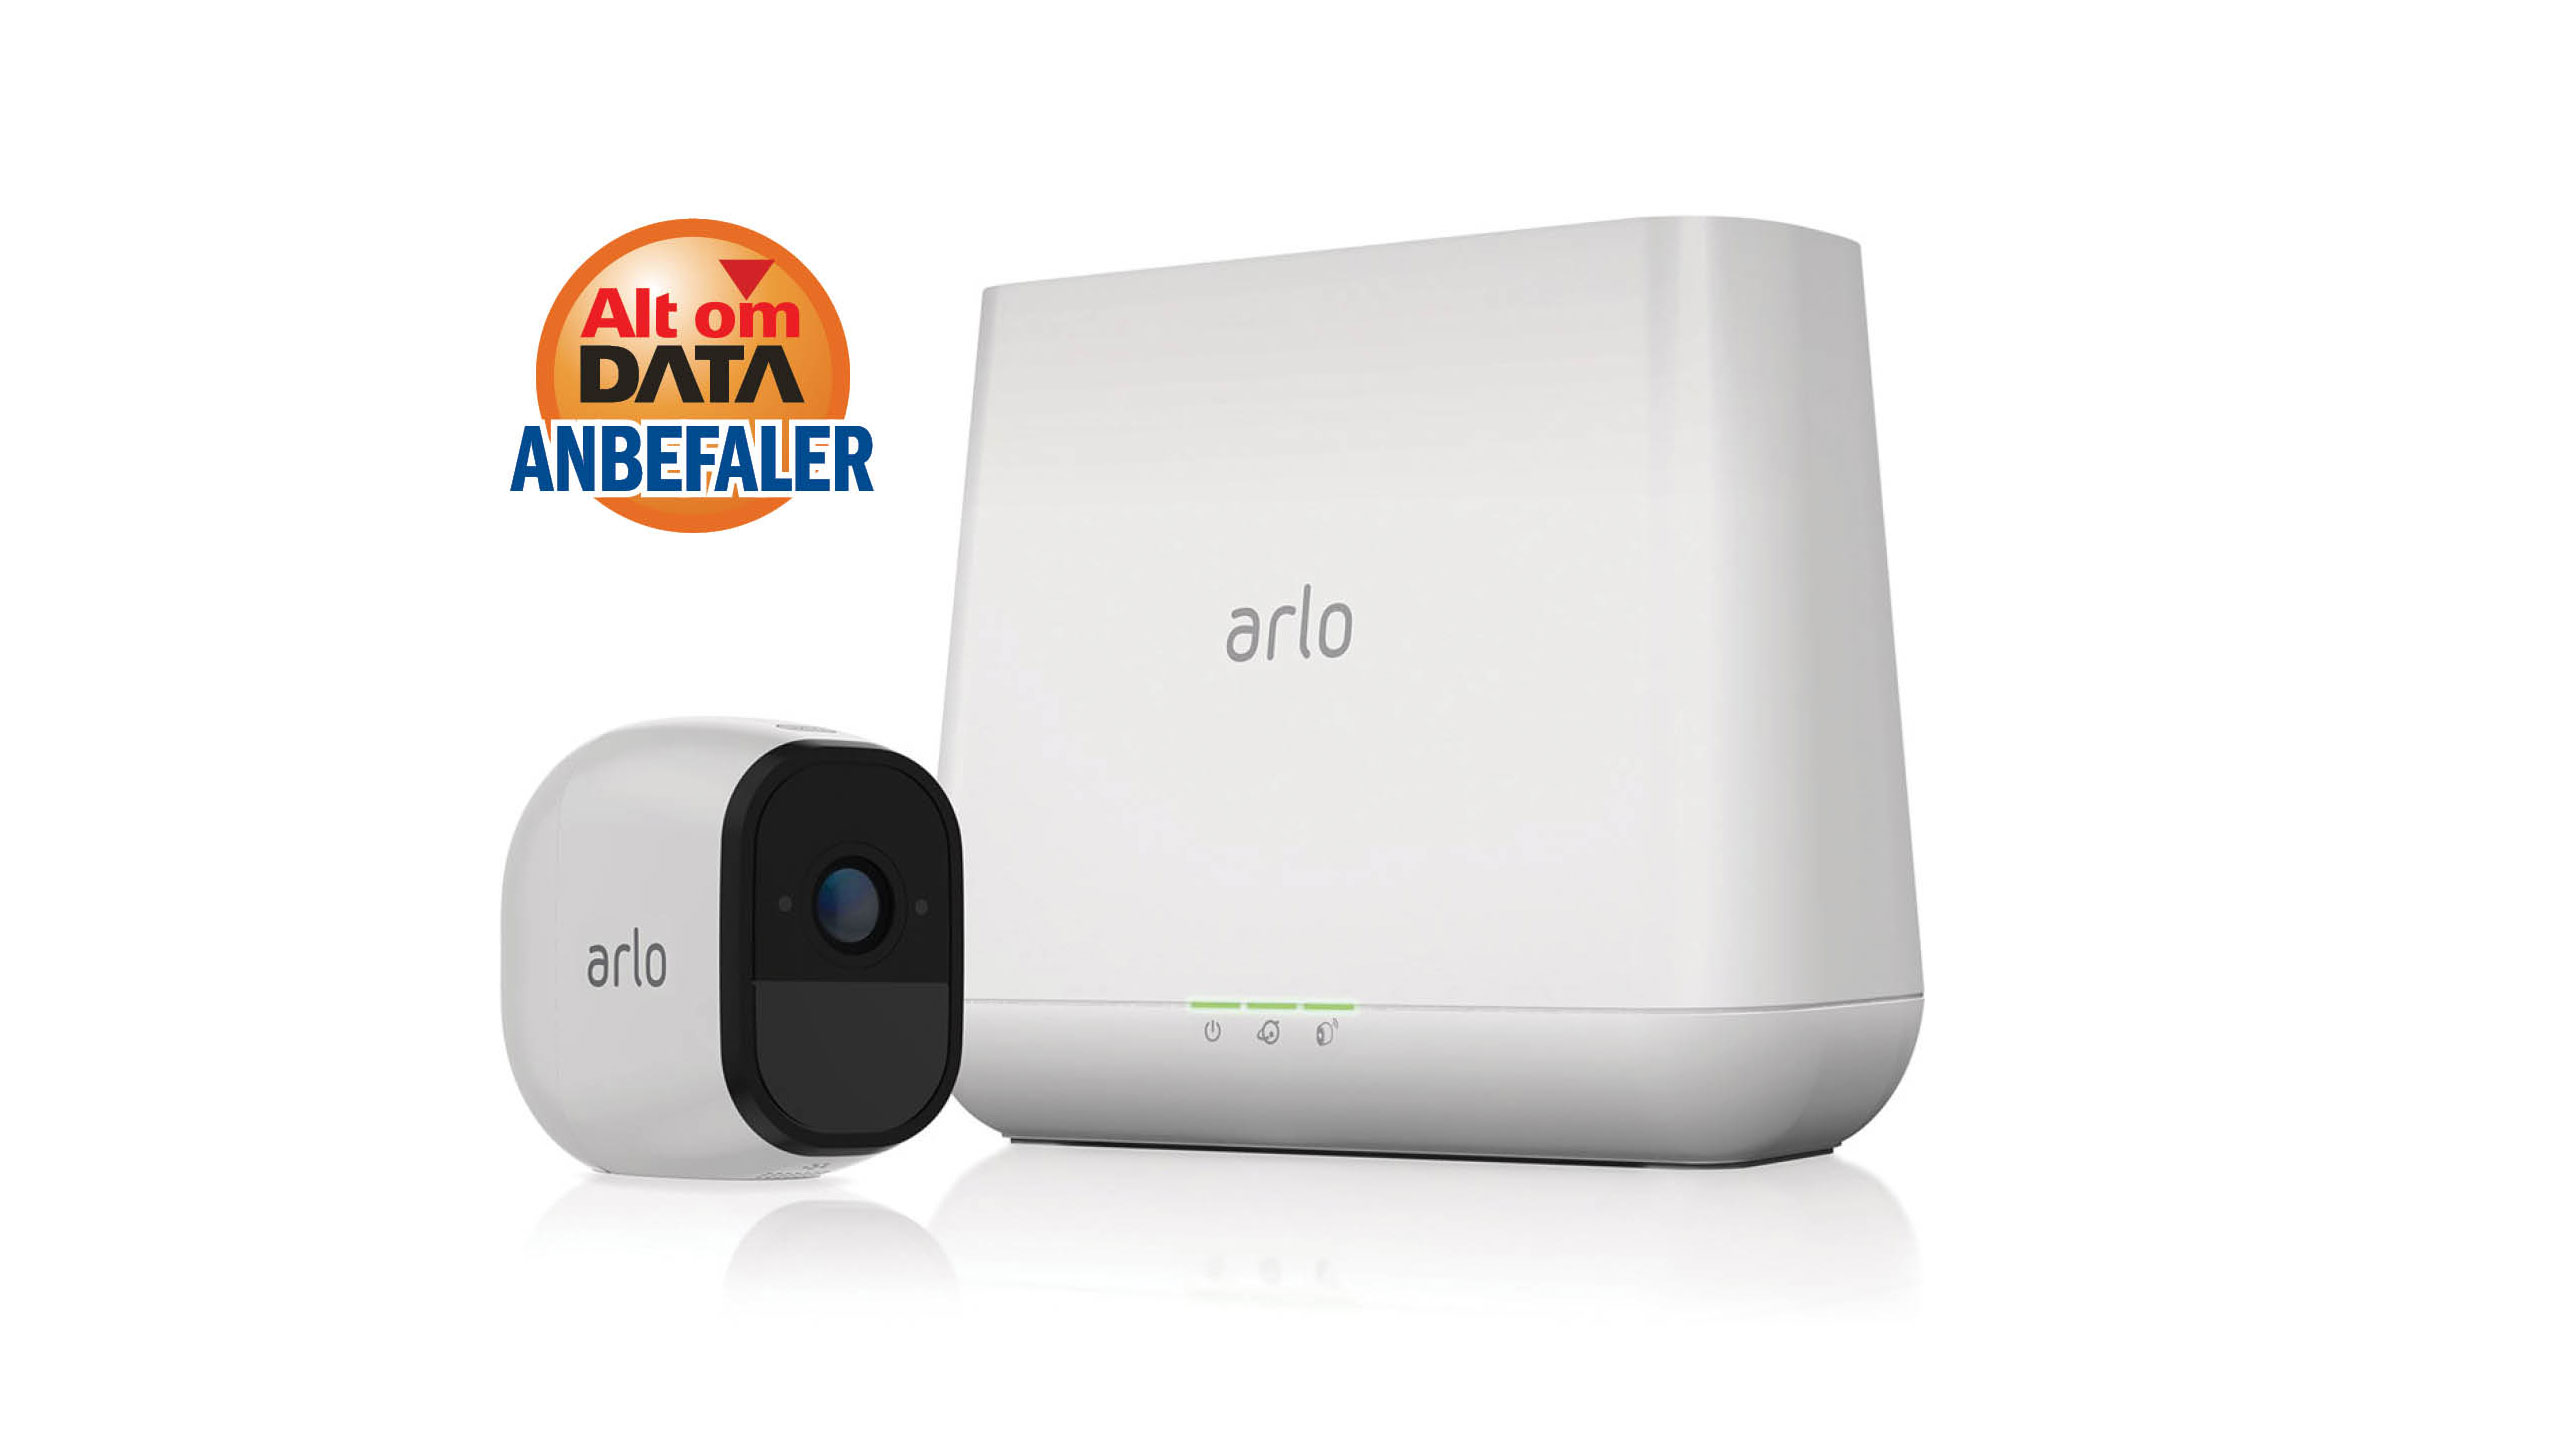 netgear arlo pro wms4130 test kabelfri videooverv gning. Black Bedroom Furniture Sets. Home Design Ideas